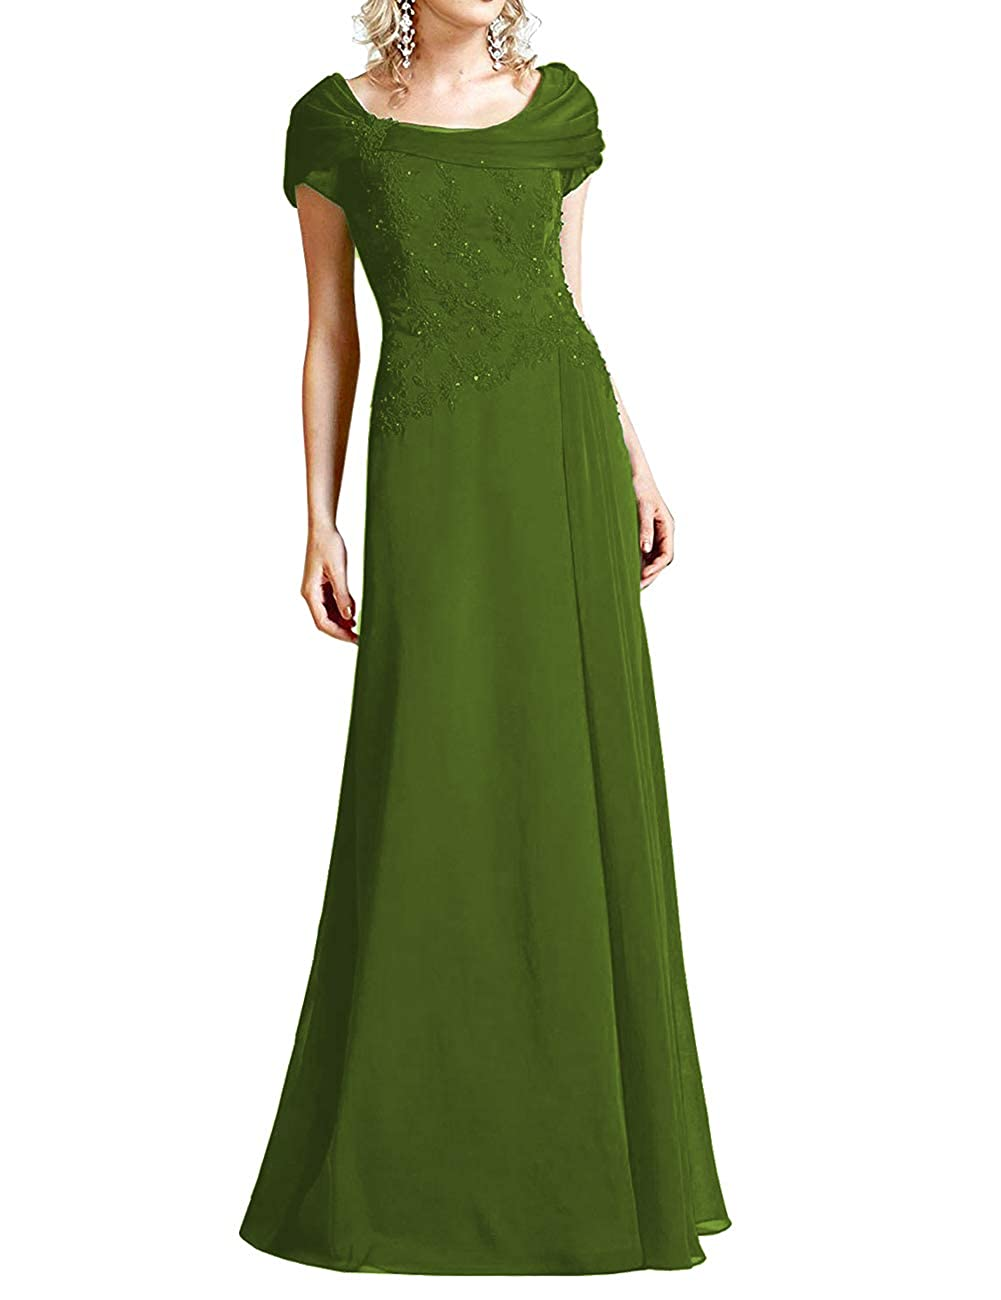 Olive Green H.S.D Mother of The Bride Dresses Lace Formal Gowns Long Evening Dress Prom Wrap Shawl